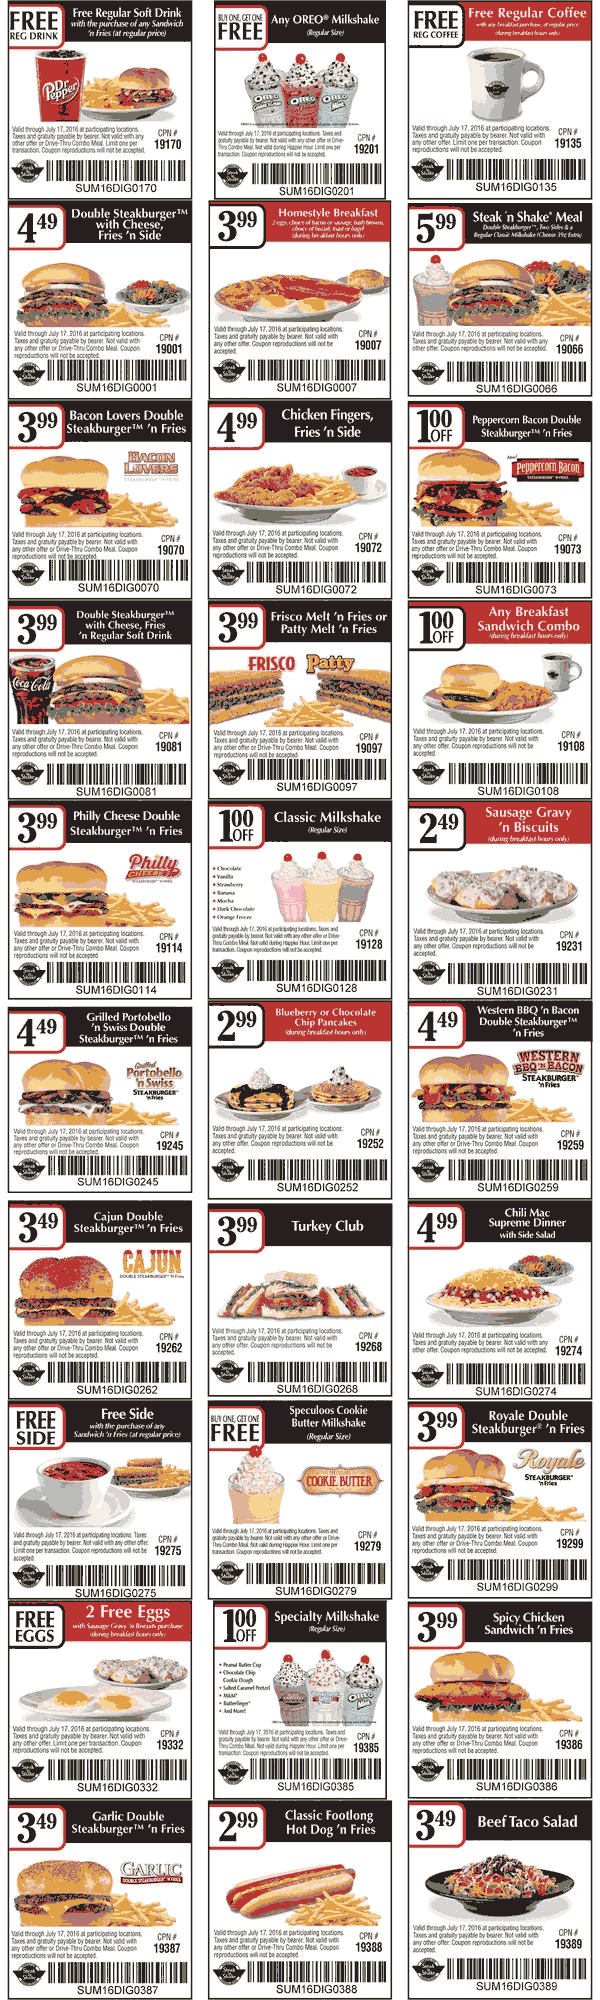 Print out coupons for Steak 'n Shake. BeFrugal updates printable coupons for Steak 'n Shake every day. Print the coupons below and take to a participating Steak 'n Shake to save.